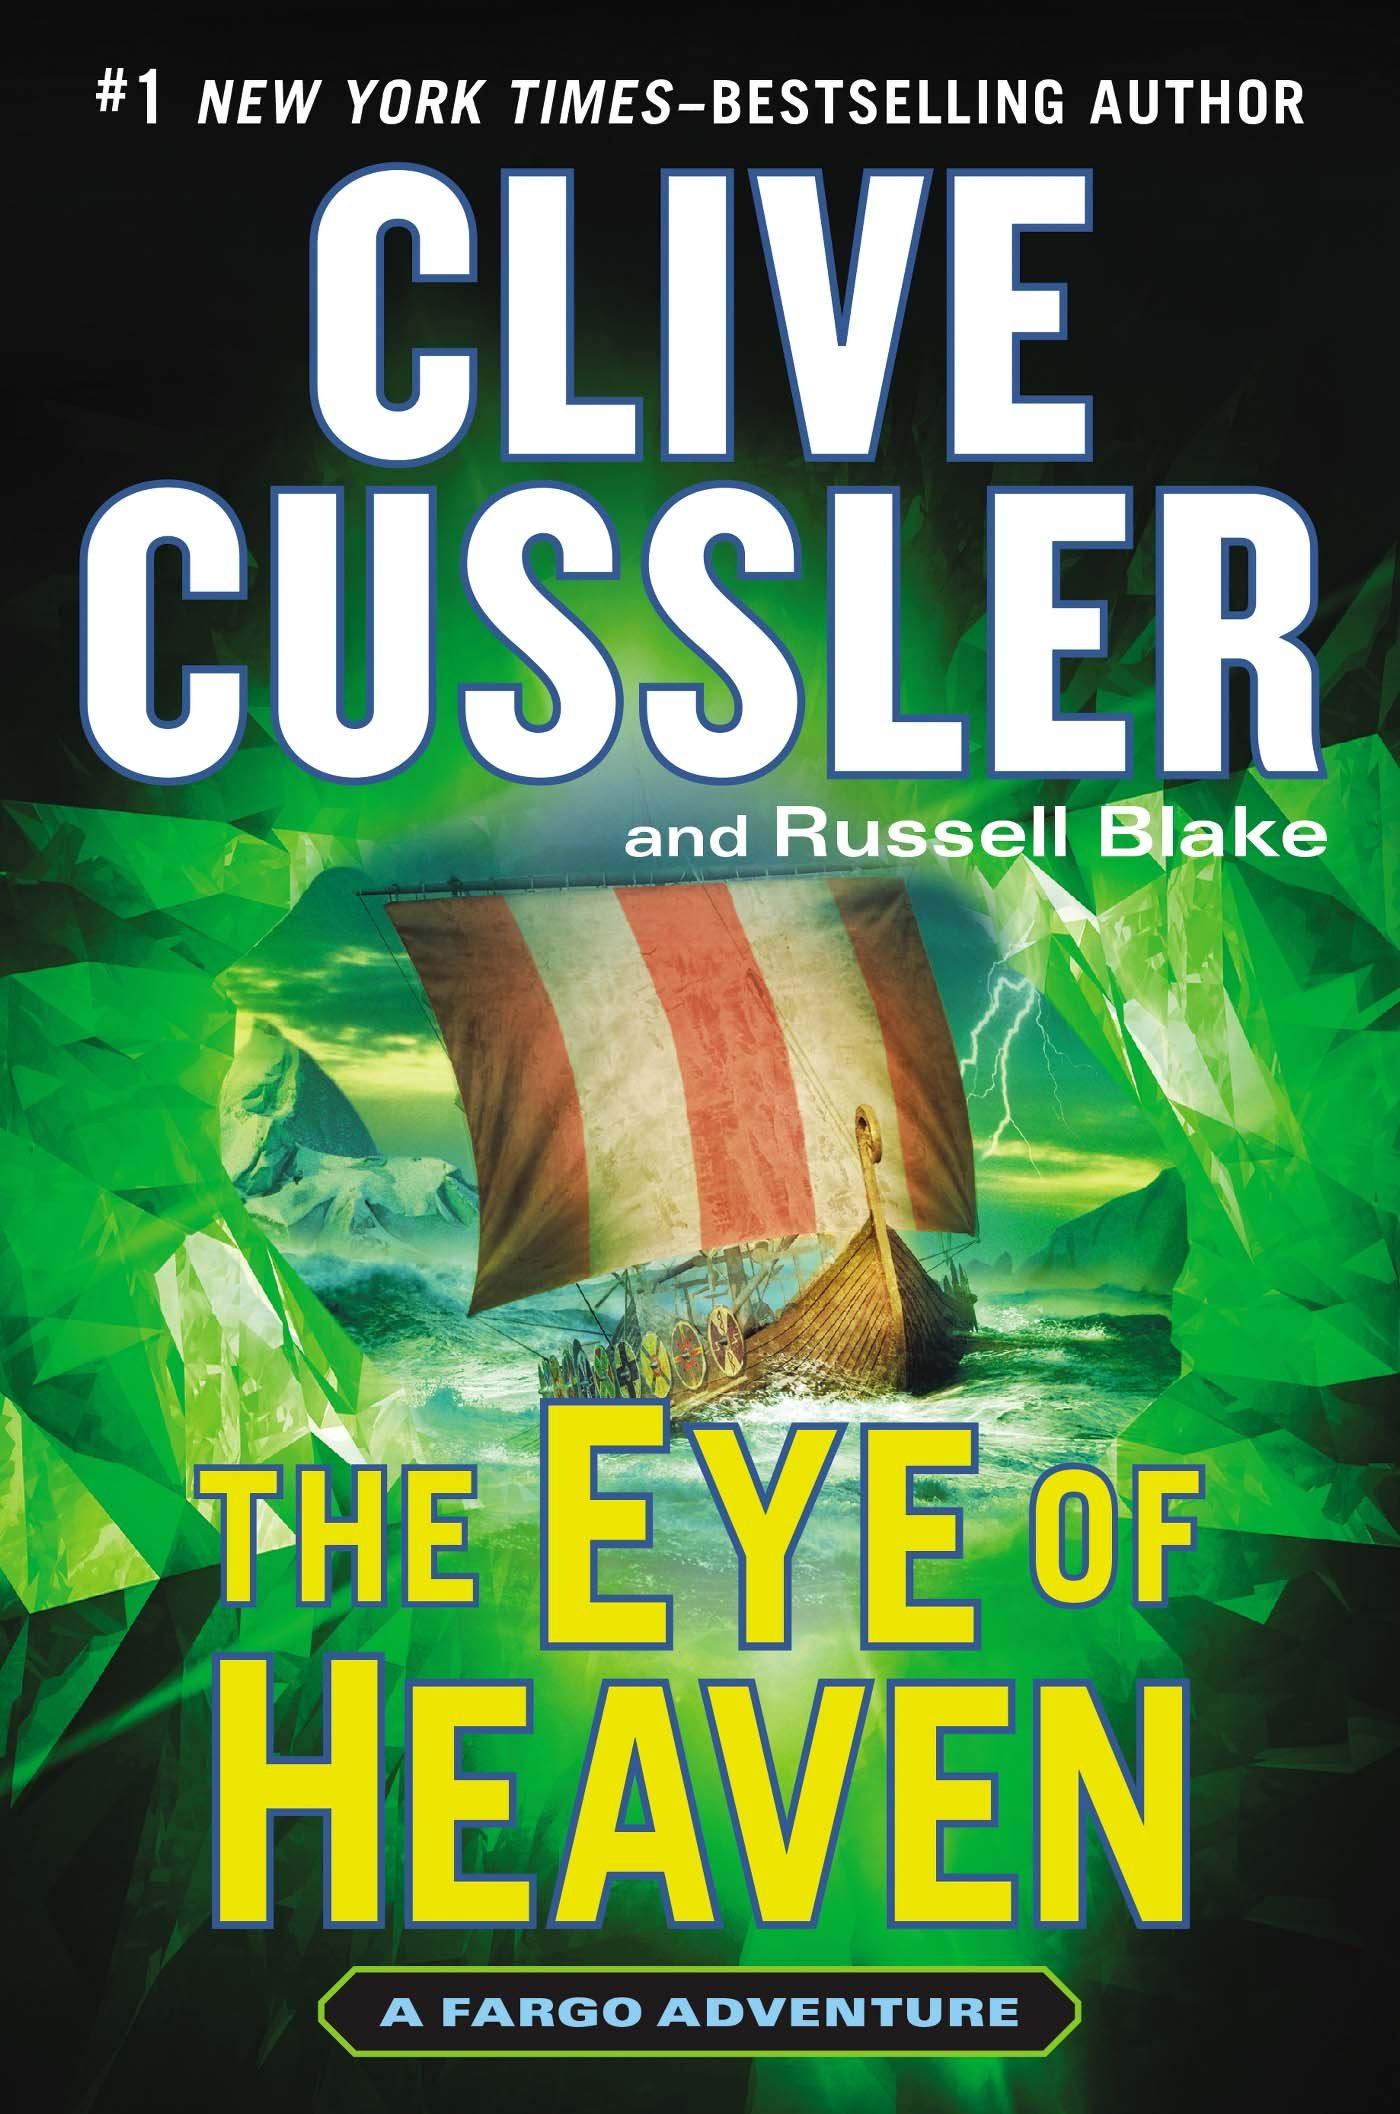 The Eye of Heaven (A Fargo Adventure) - Clive Cussler, Russell Blake